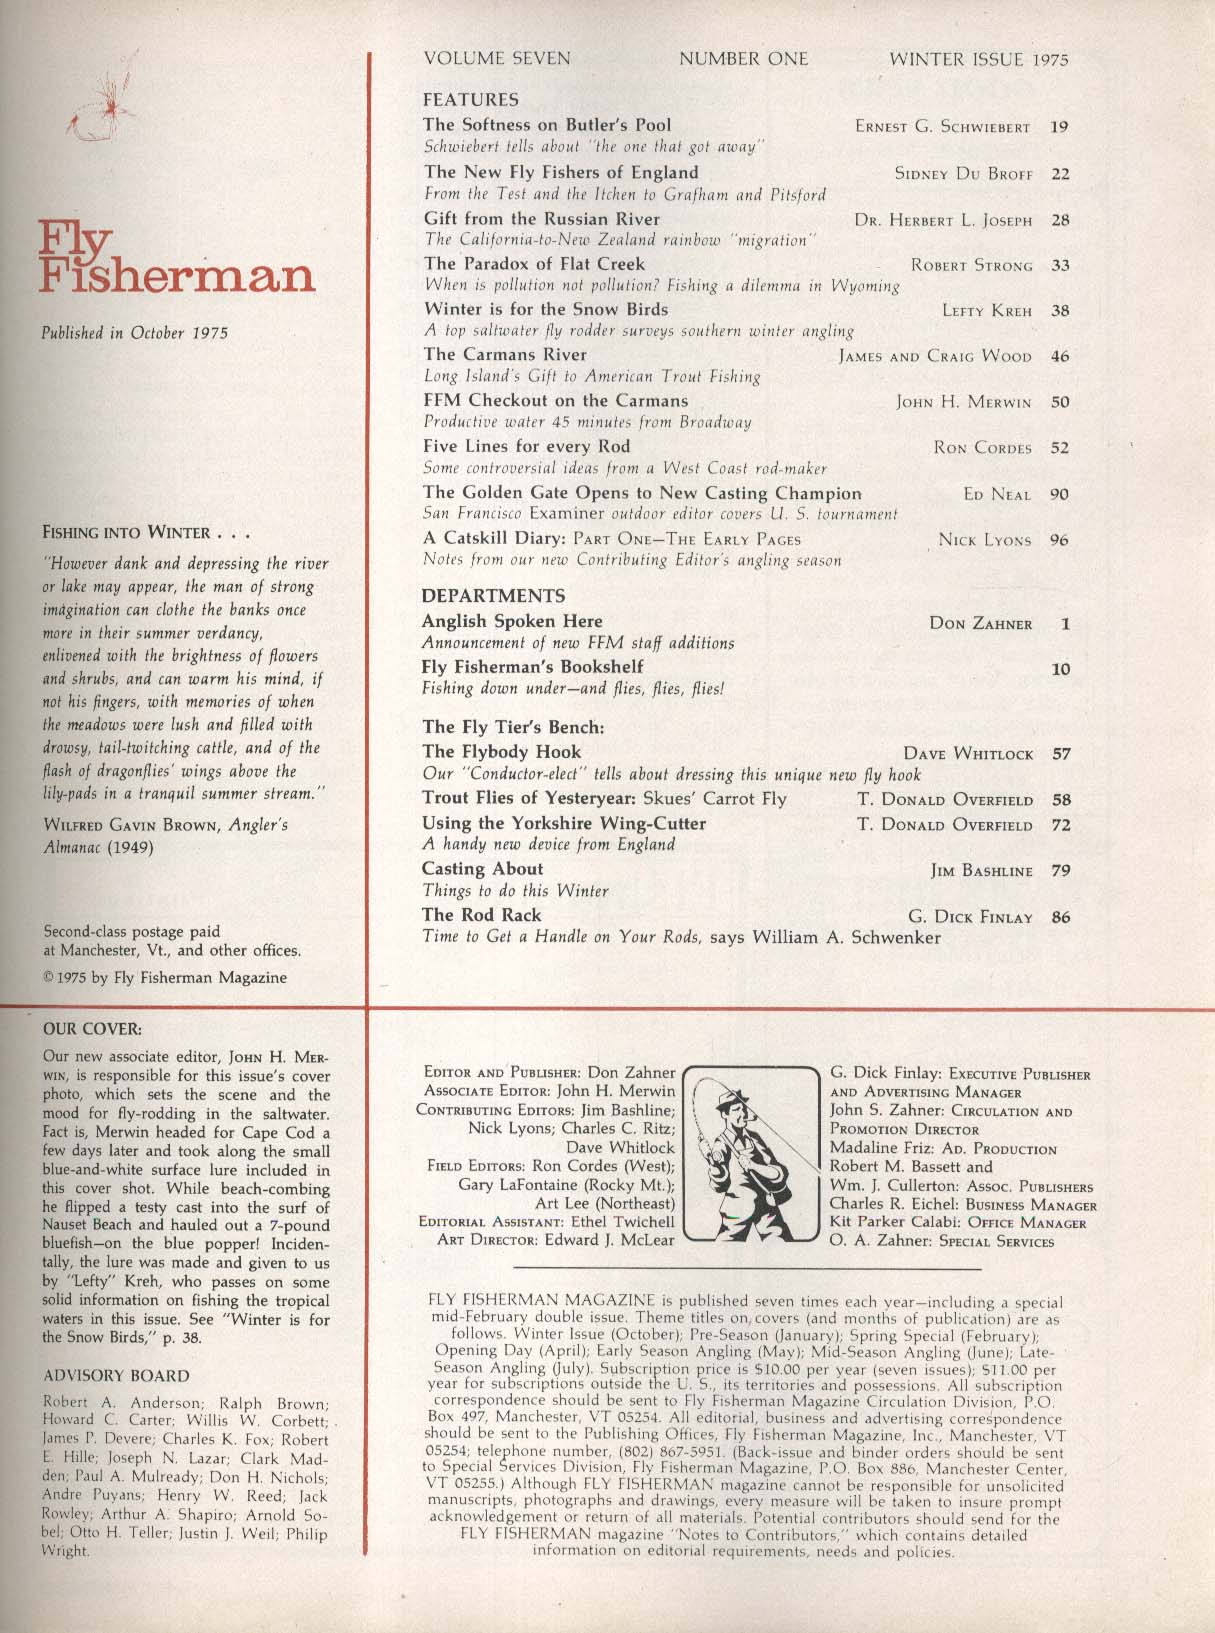 FLY FISHERMAN Winter Issue 1975 Russian River Angling